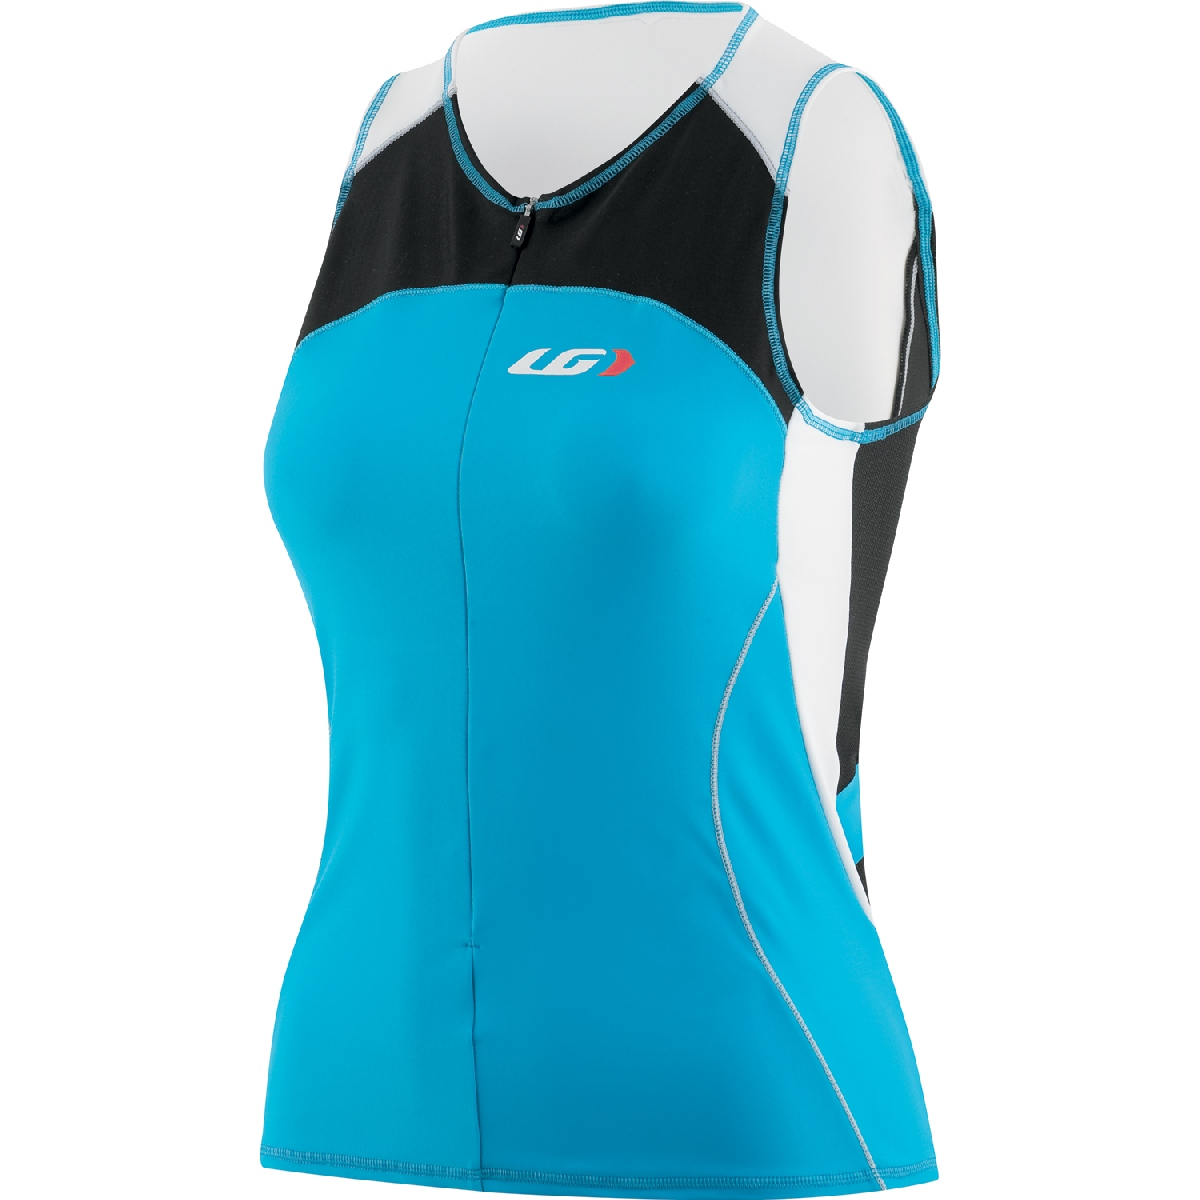 Louis Garneau Comp Sleeveless Triathlon Top Women's Size M AtomicBlue U.S.A. & Canada